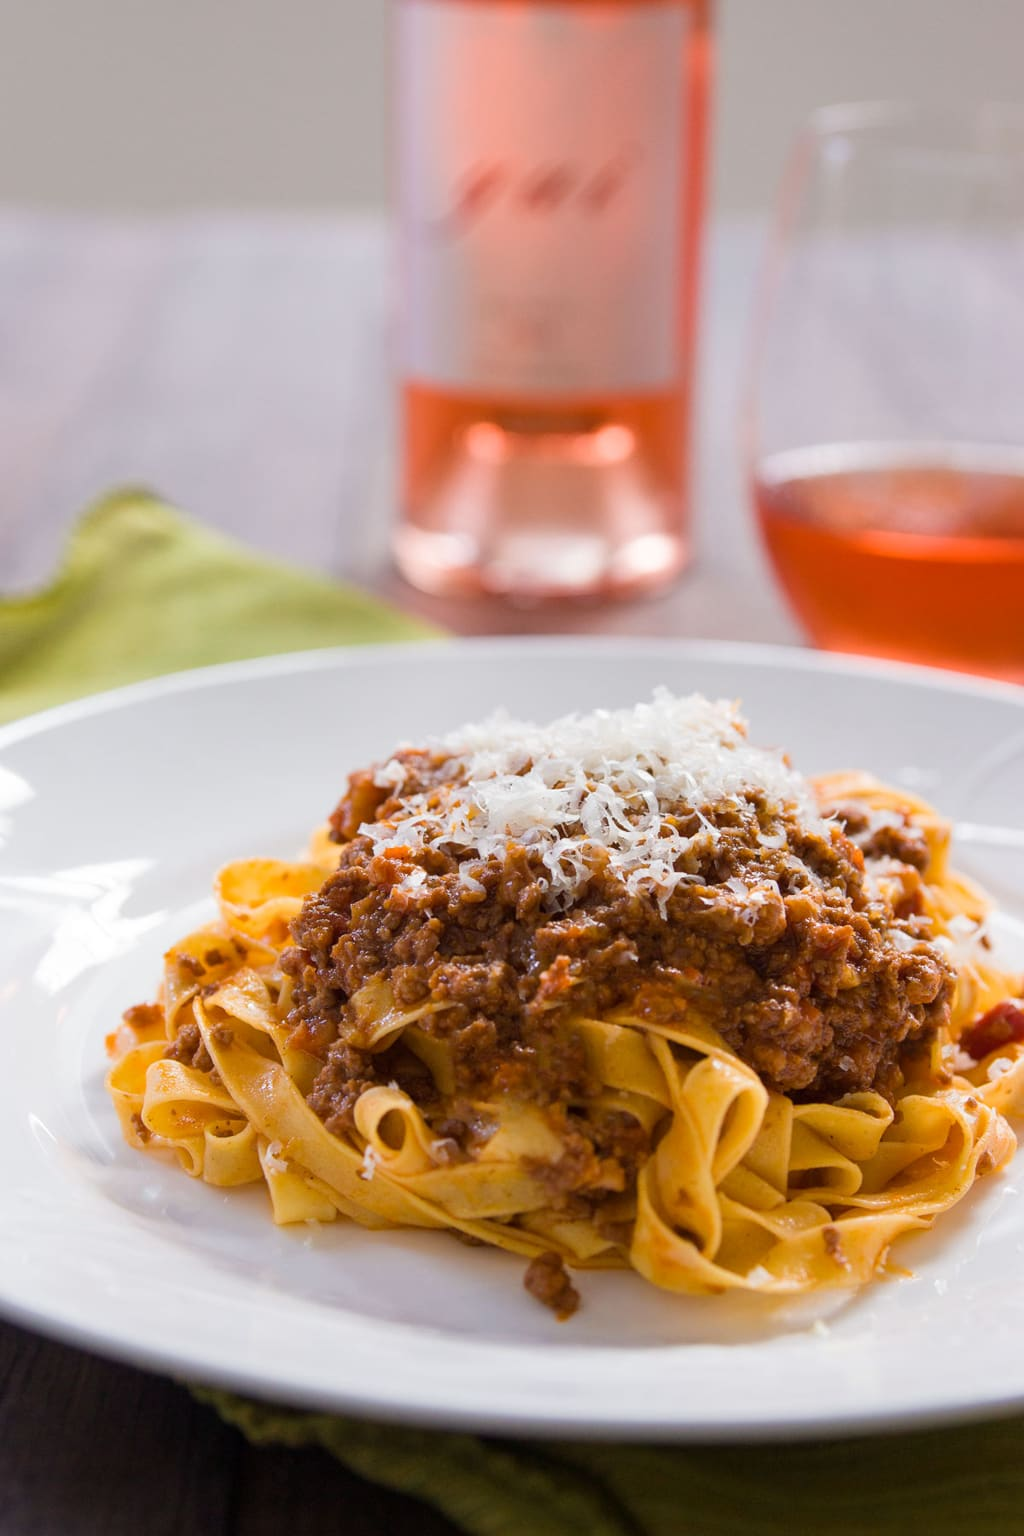 Ragù Alla Bolognese is a delightful slow-cooked meat sauce from Bologna that goes beautifully with some tagliatelle. Slowly cooking a blend of beef and pork is the trick to an ultra flavorful Bolognese.